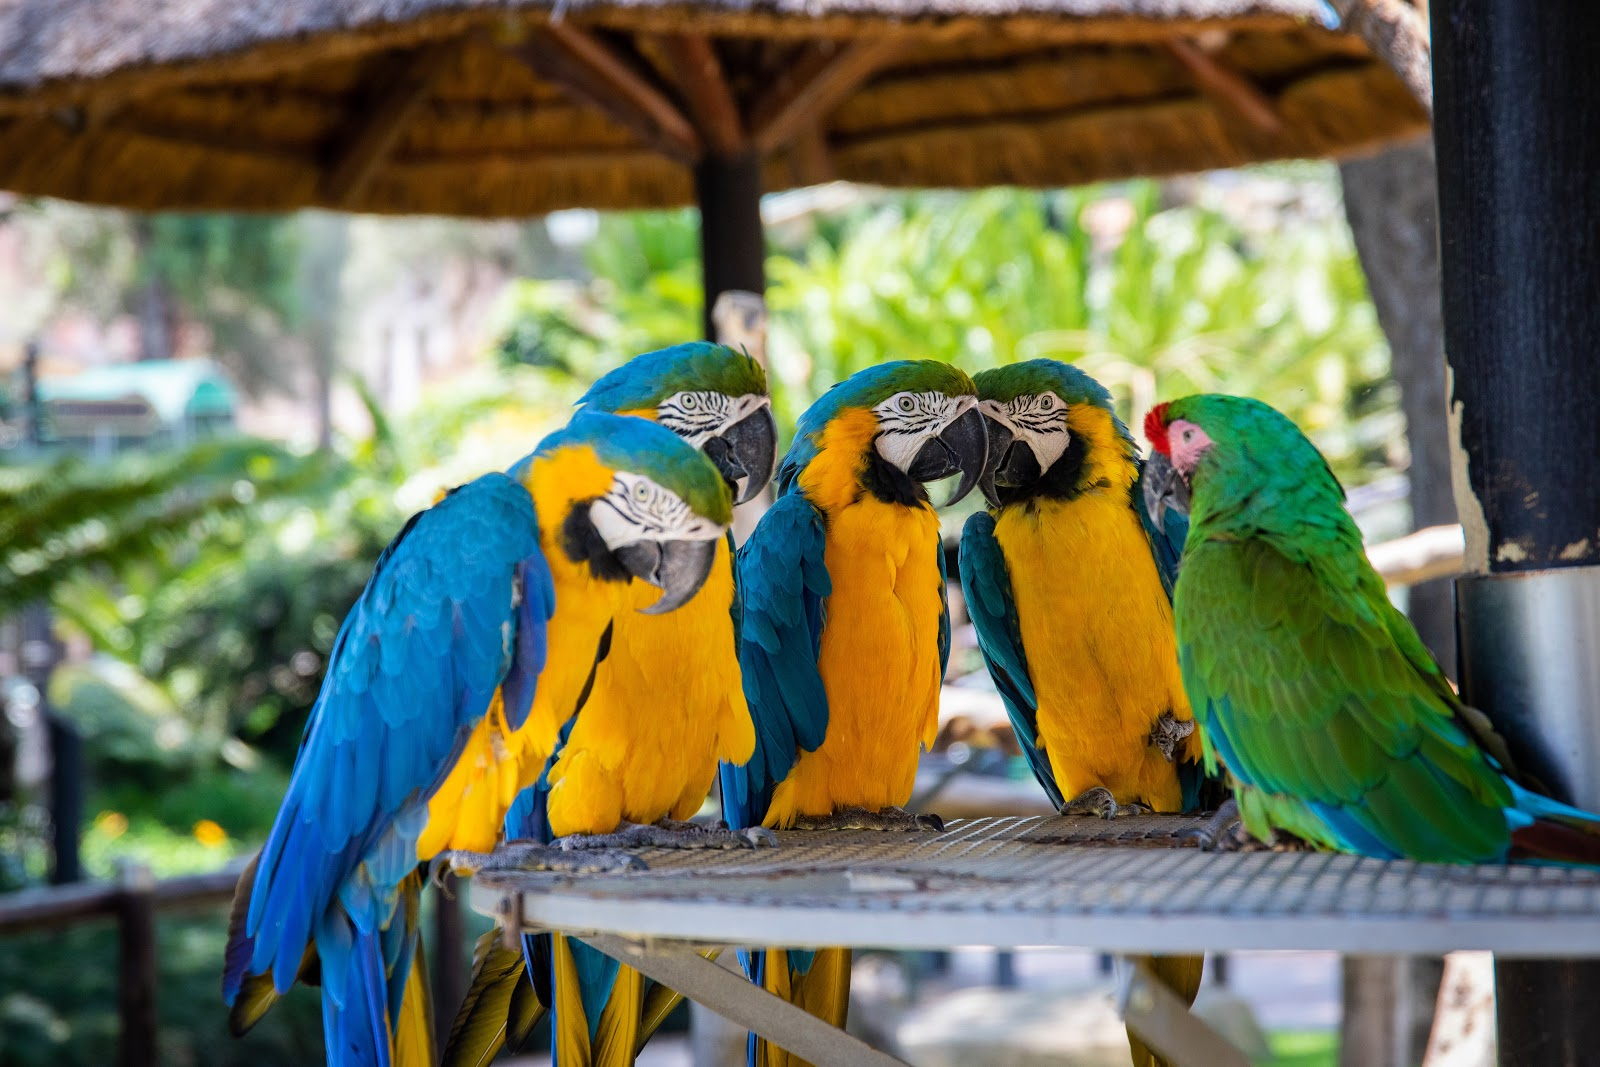 five-parrots-perched-on-brown-wooden-surface-birds-pictures